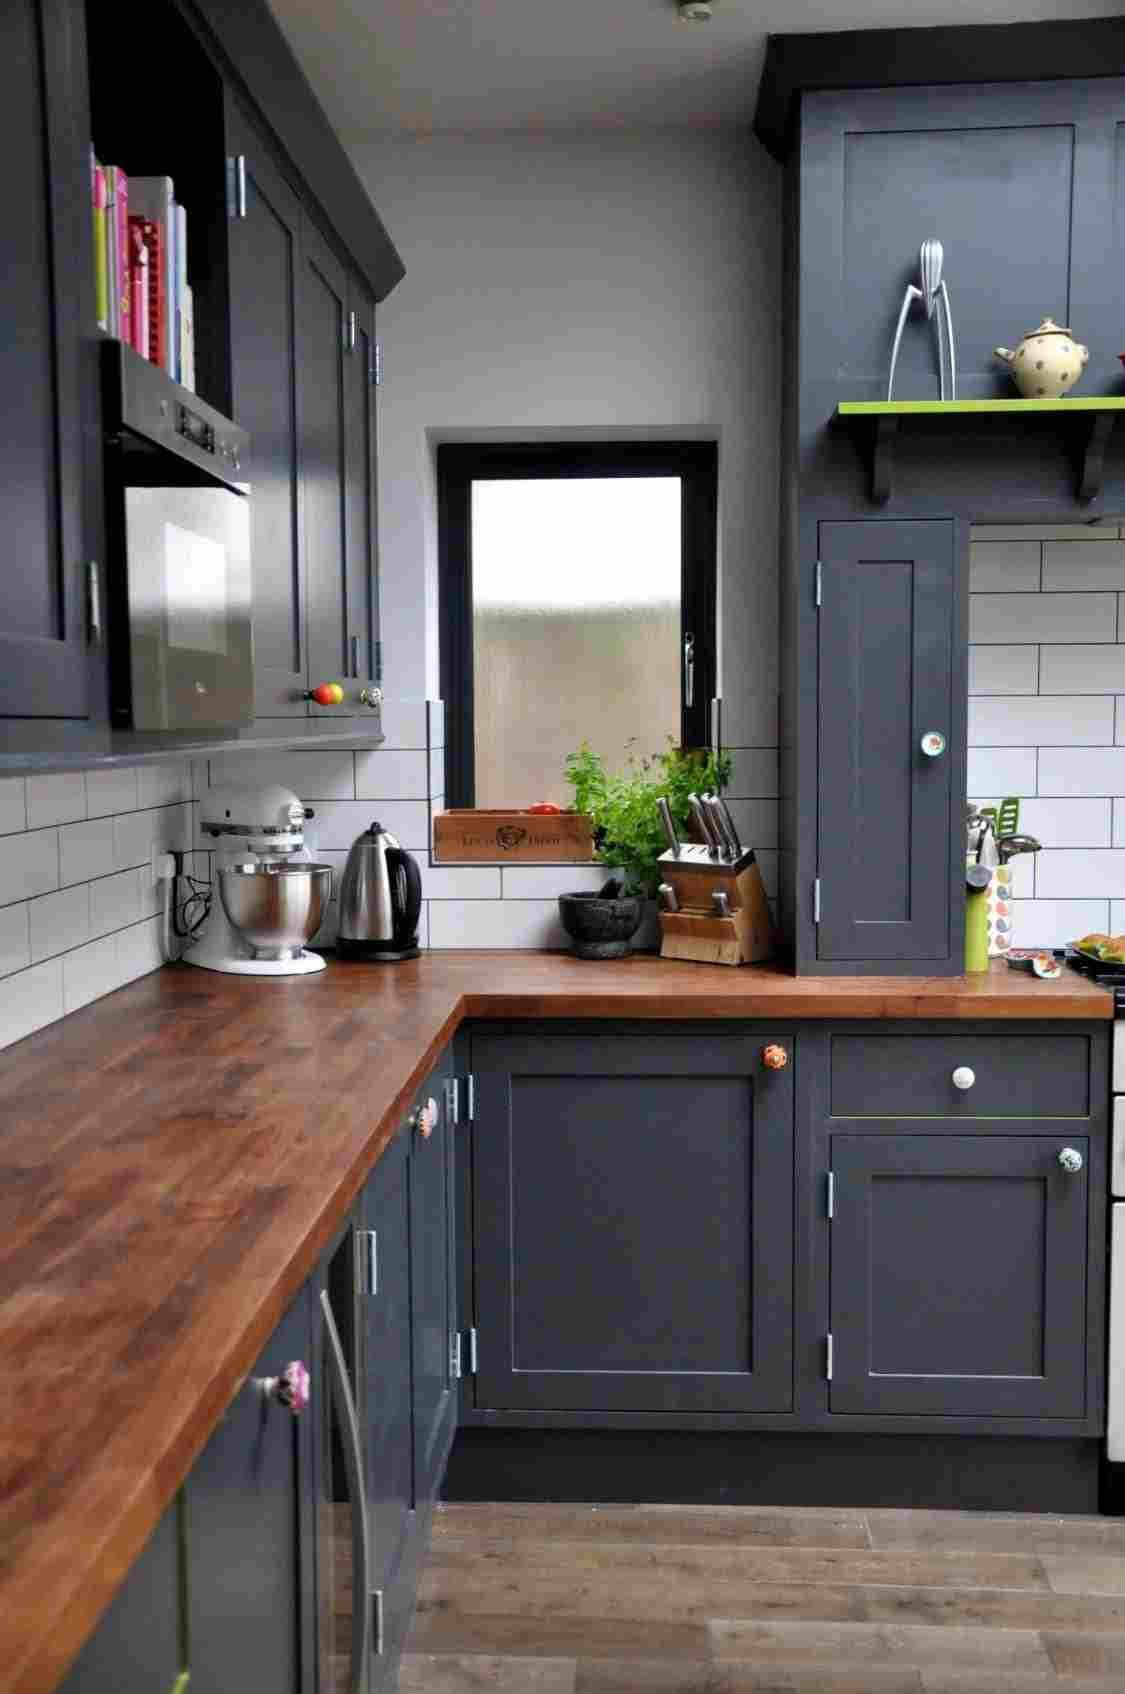 Are Black Kitchen Cabinets Hard To Keep Clean Kitchen Design Kitchen Cabinet Design Kitchen Renovation